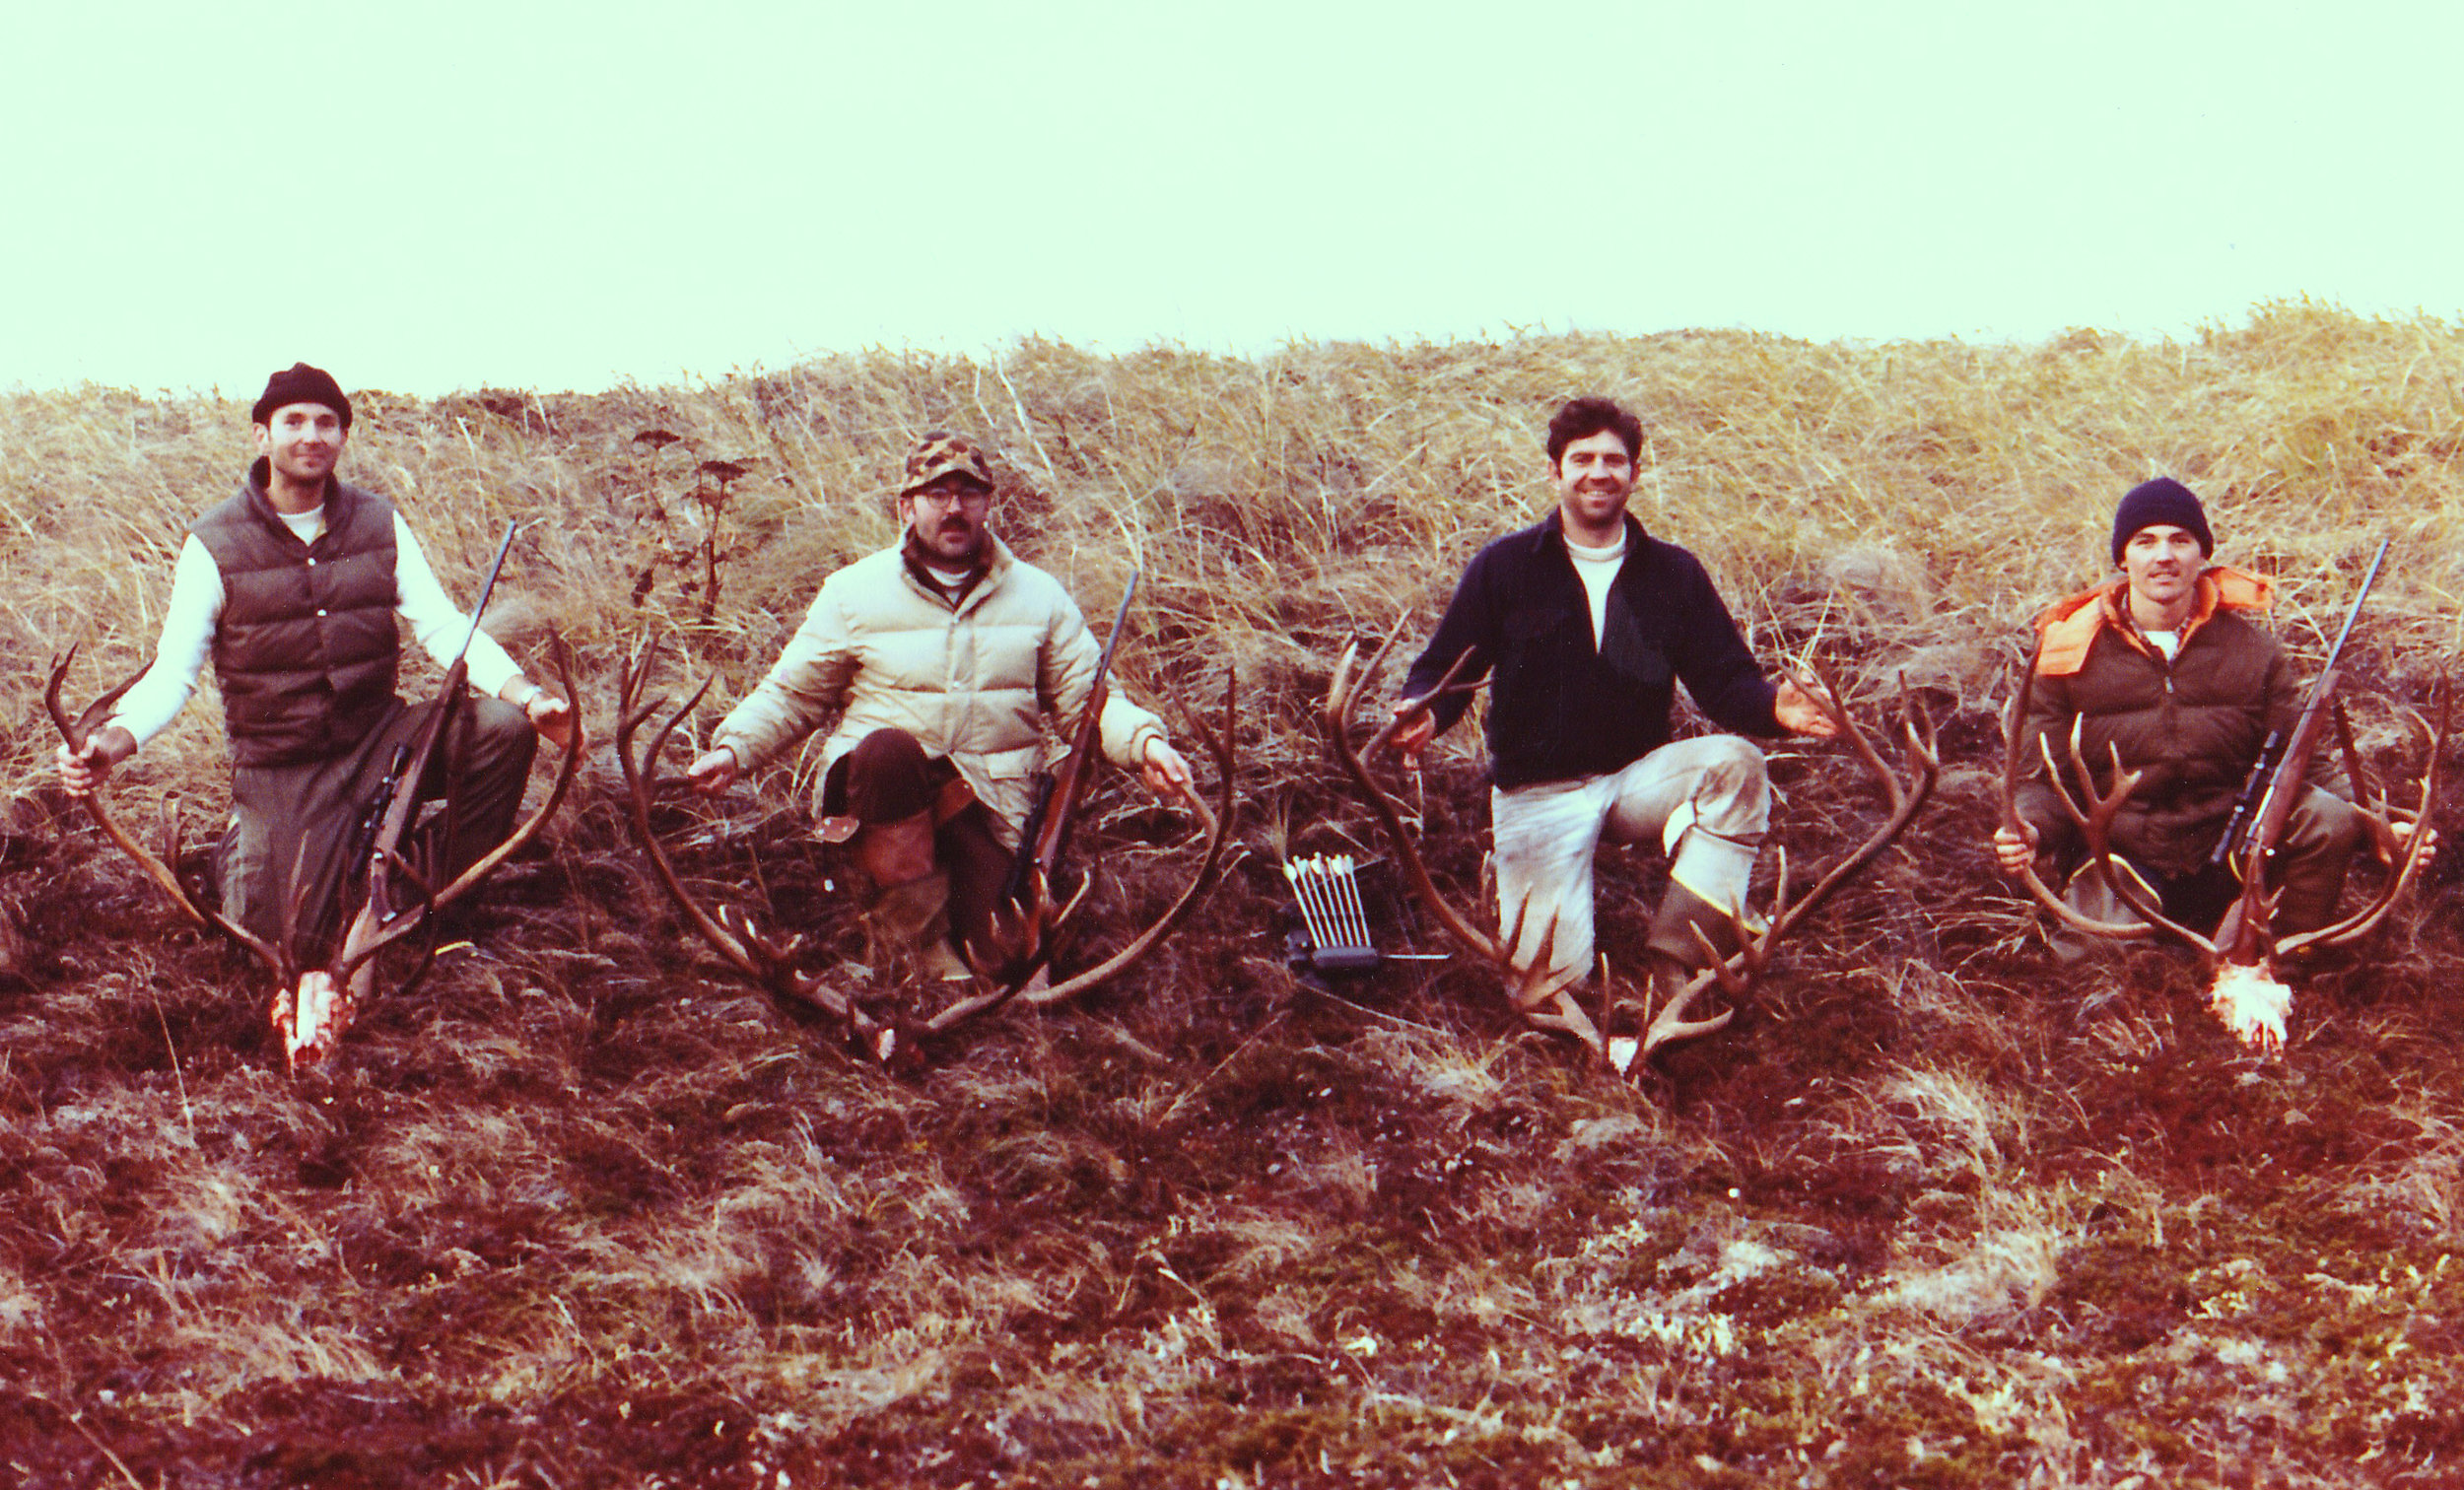 One of our Alaska Peninsula caribou hunts. (L to R) Mike Herbert, Earl Boucher, me and Scottie Bailey.